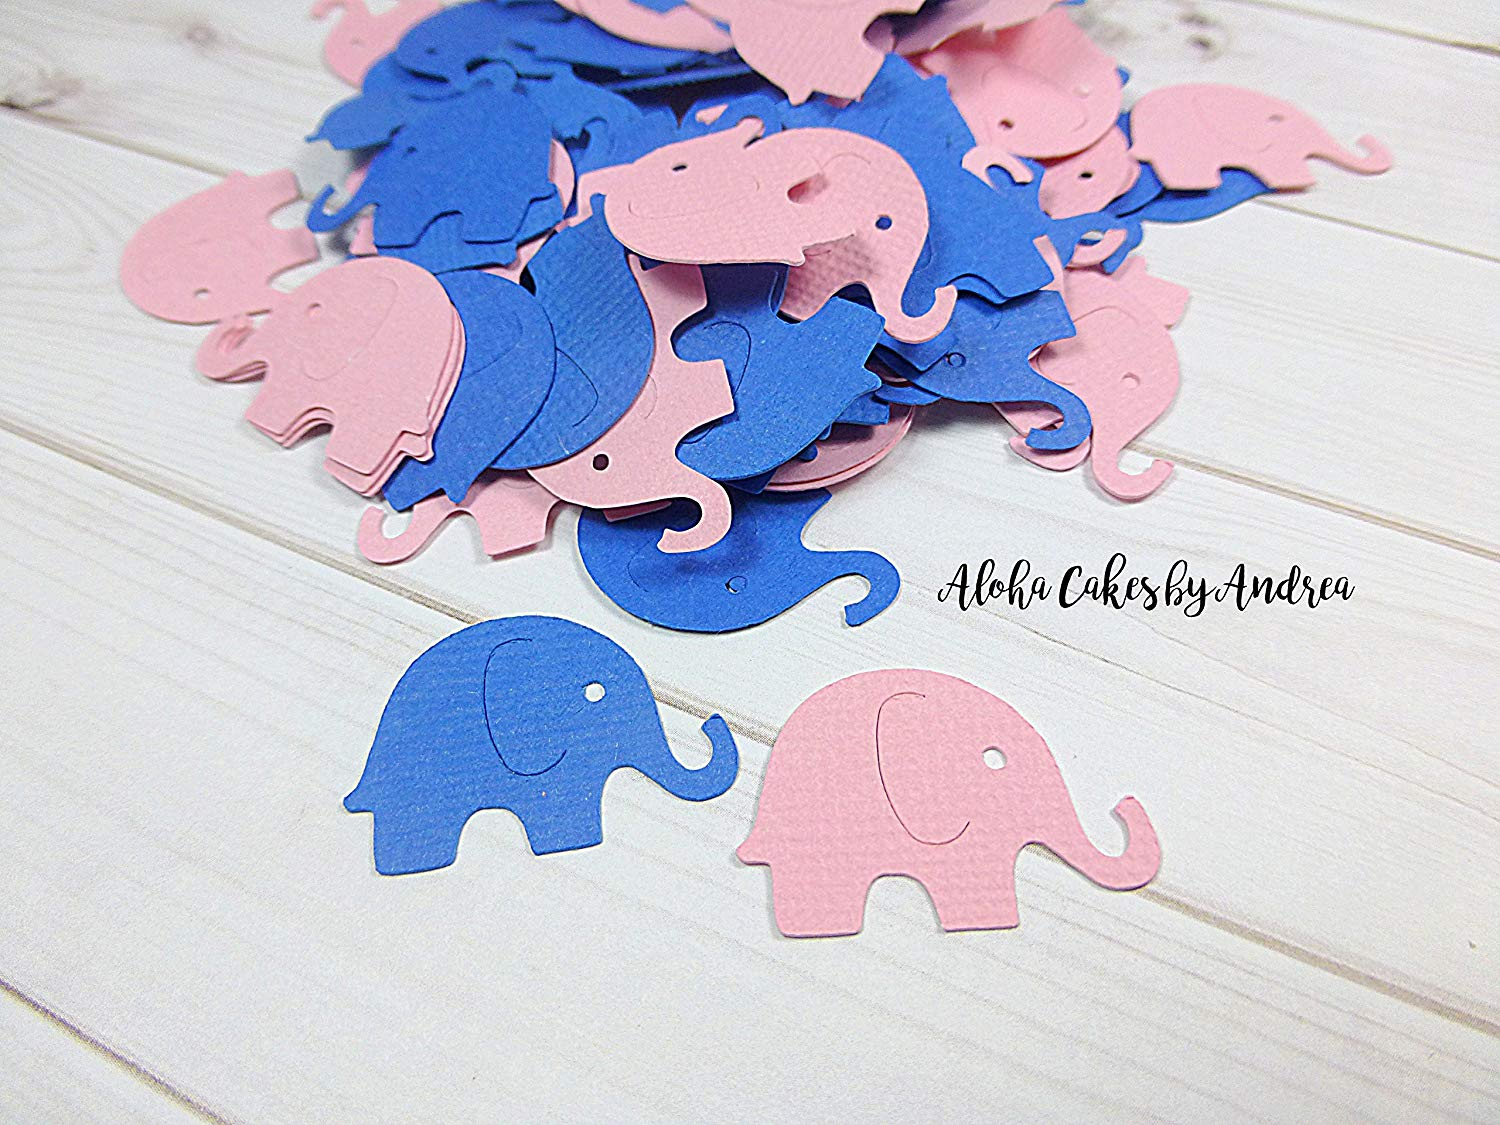 Elephant Confetti, Royal Blue and Light Pink, Baby Shower Decorations, Gender Reveal, Little Peanut Baby Shower, Elephant Die Cut, 1 inch, Small Elephants, Twins Shower, package of 100